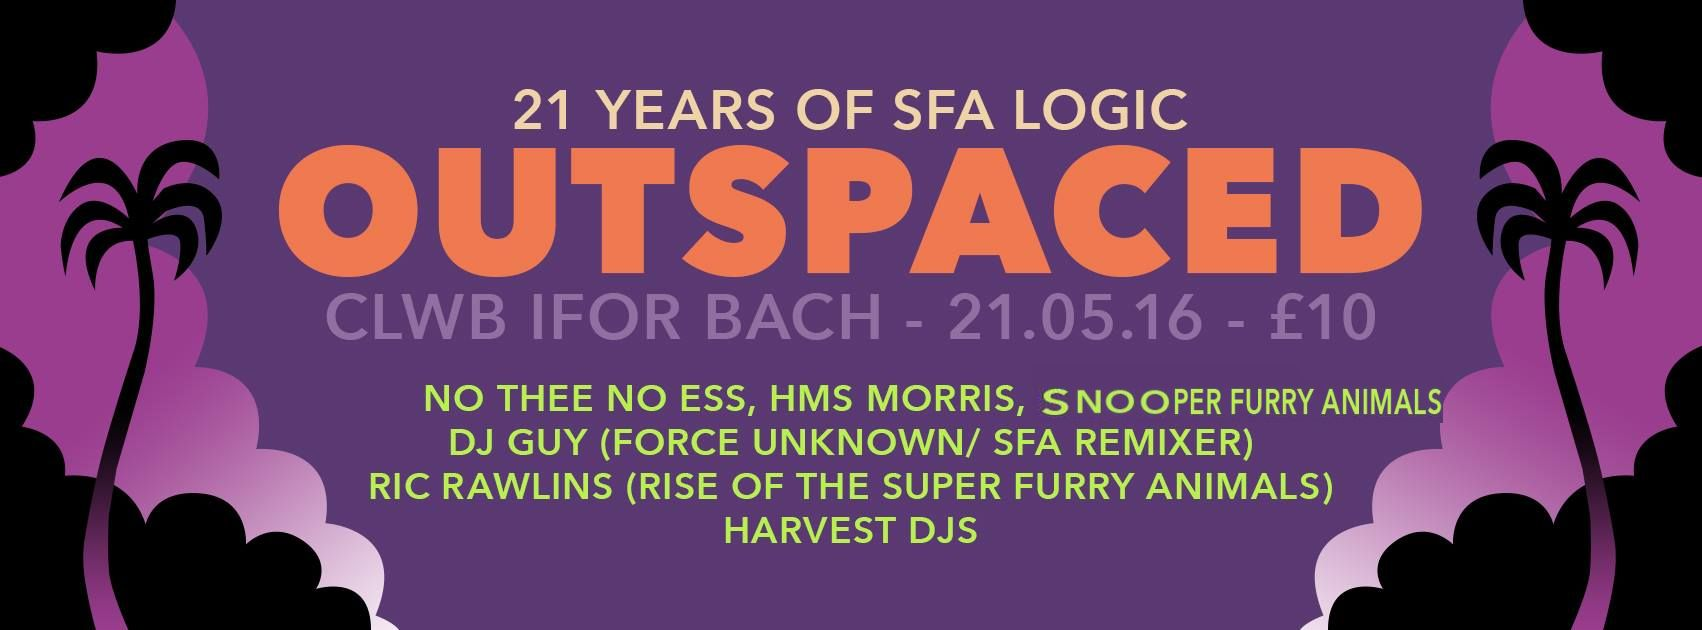 NEWS: Something 4 The Weekend: Outspaced – A Celebration of 21 Years of Super Furry Logic in Cardiff this Saturday!